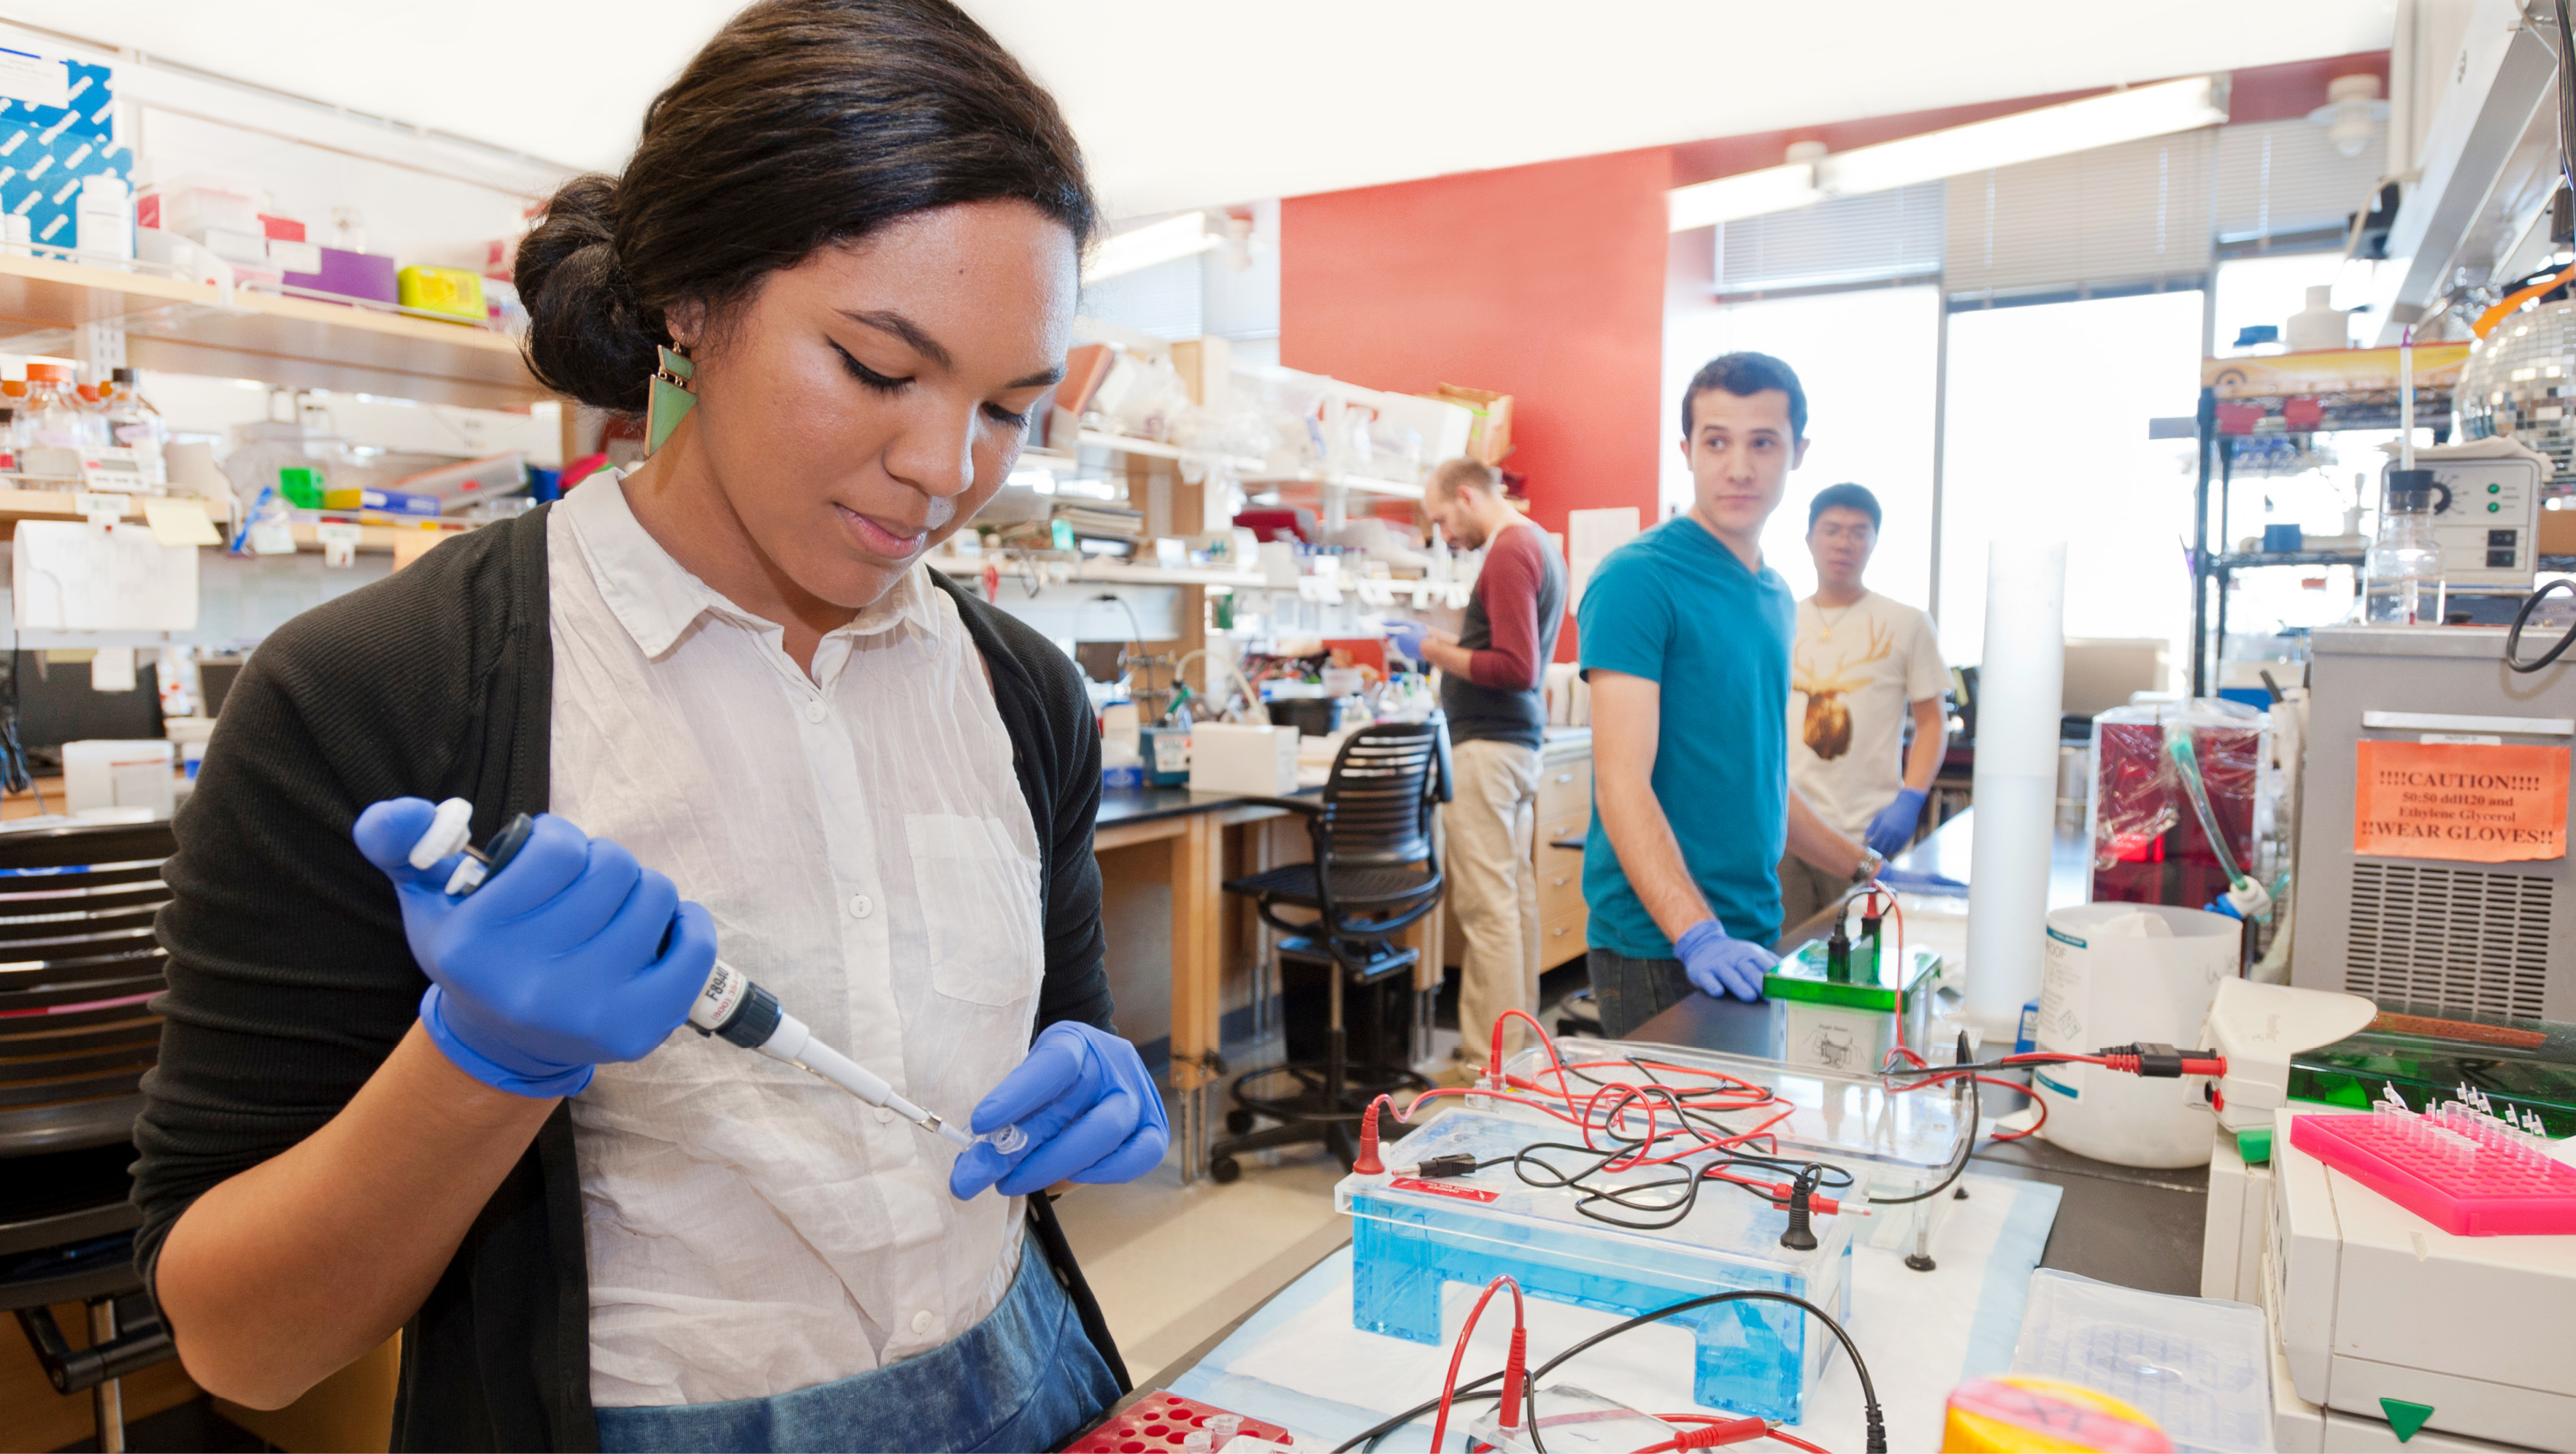 curious student looking over as another student injects some type of liquid into an apparatus